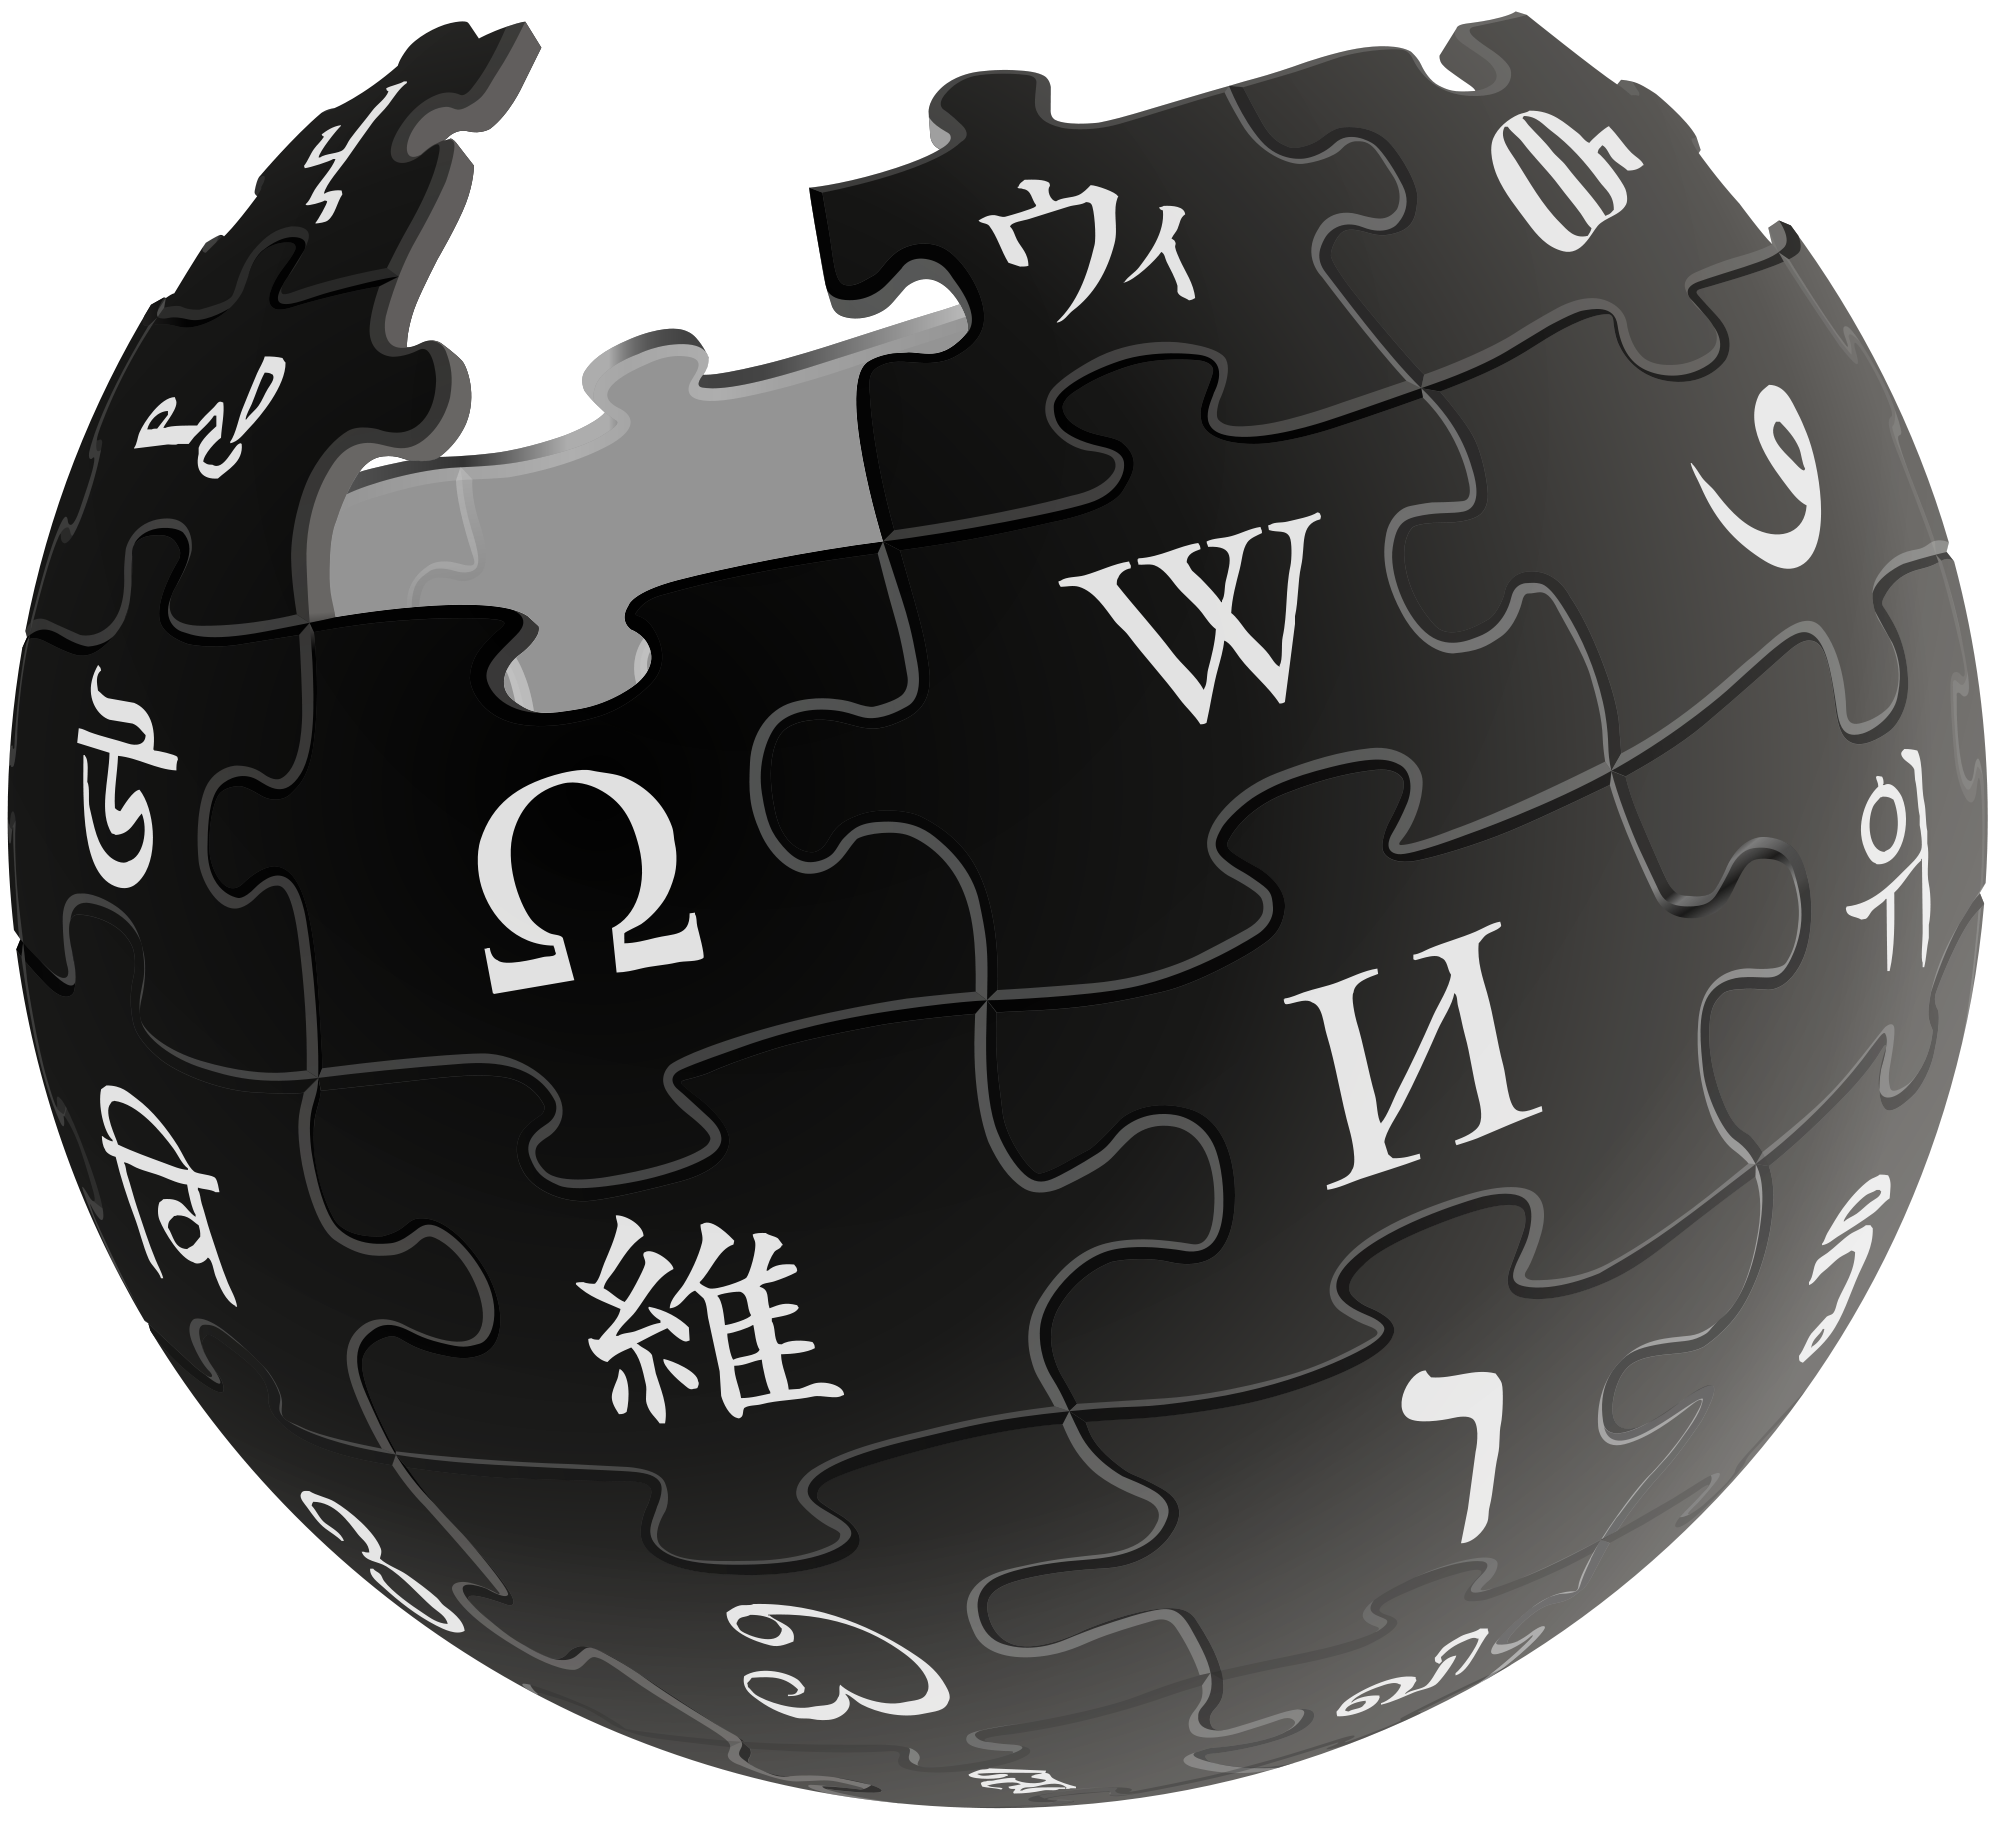 filewikiblackpng wikimedia commons